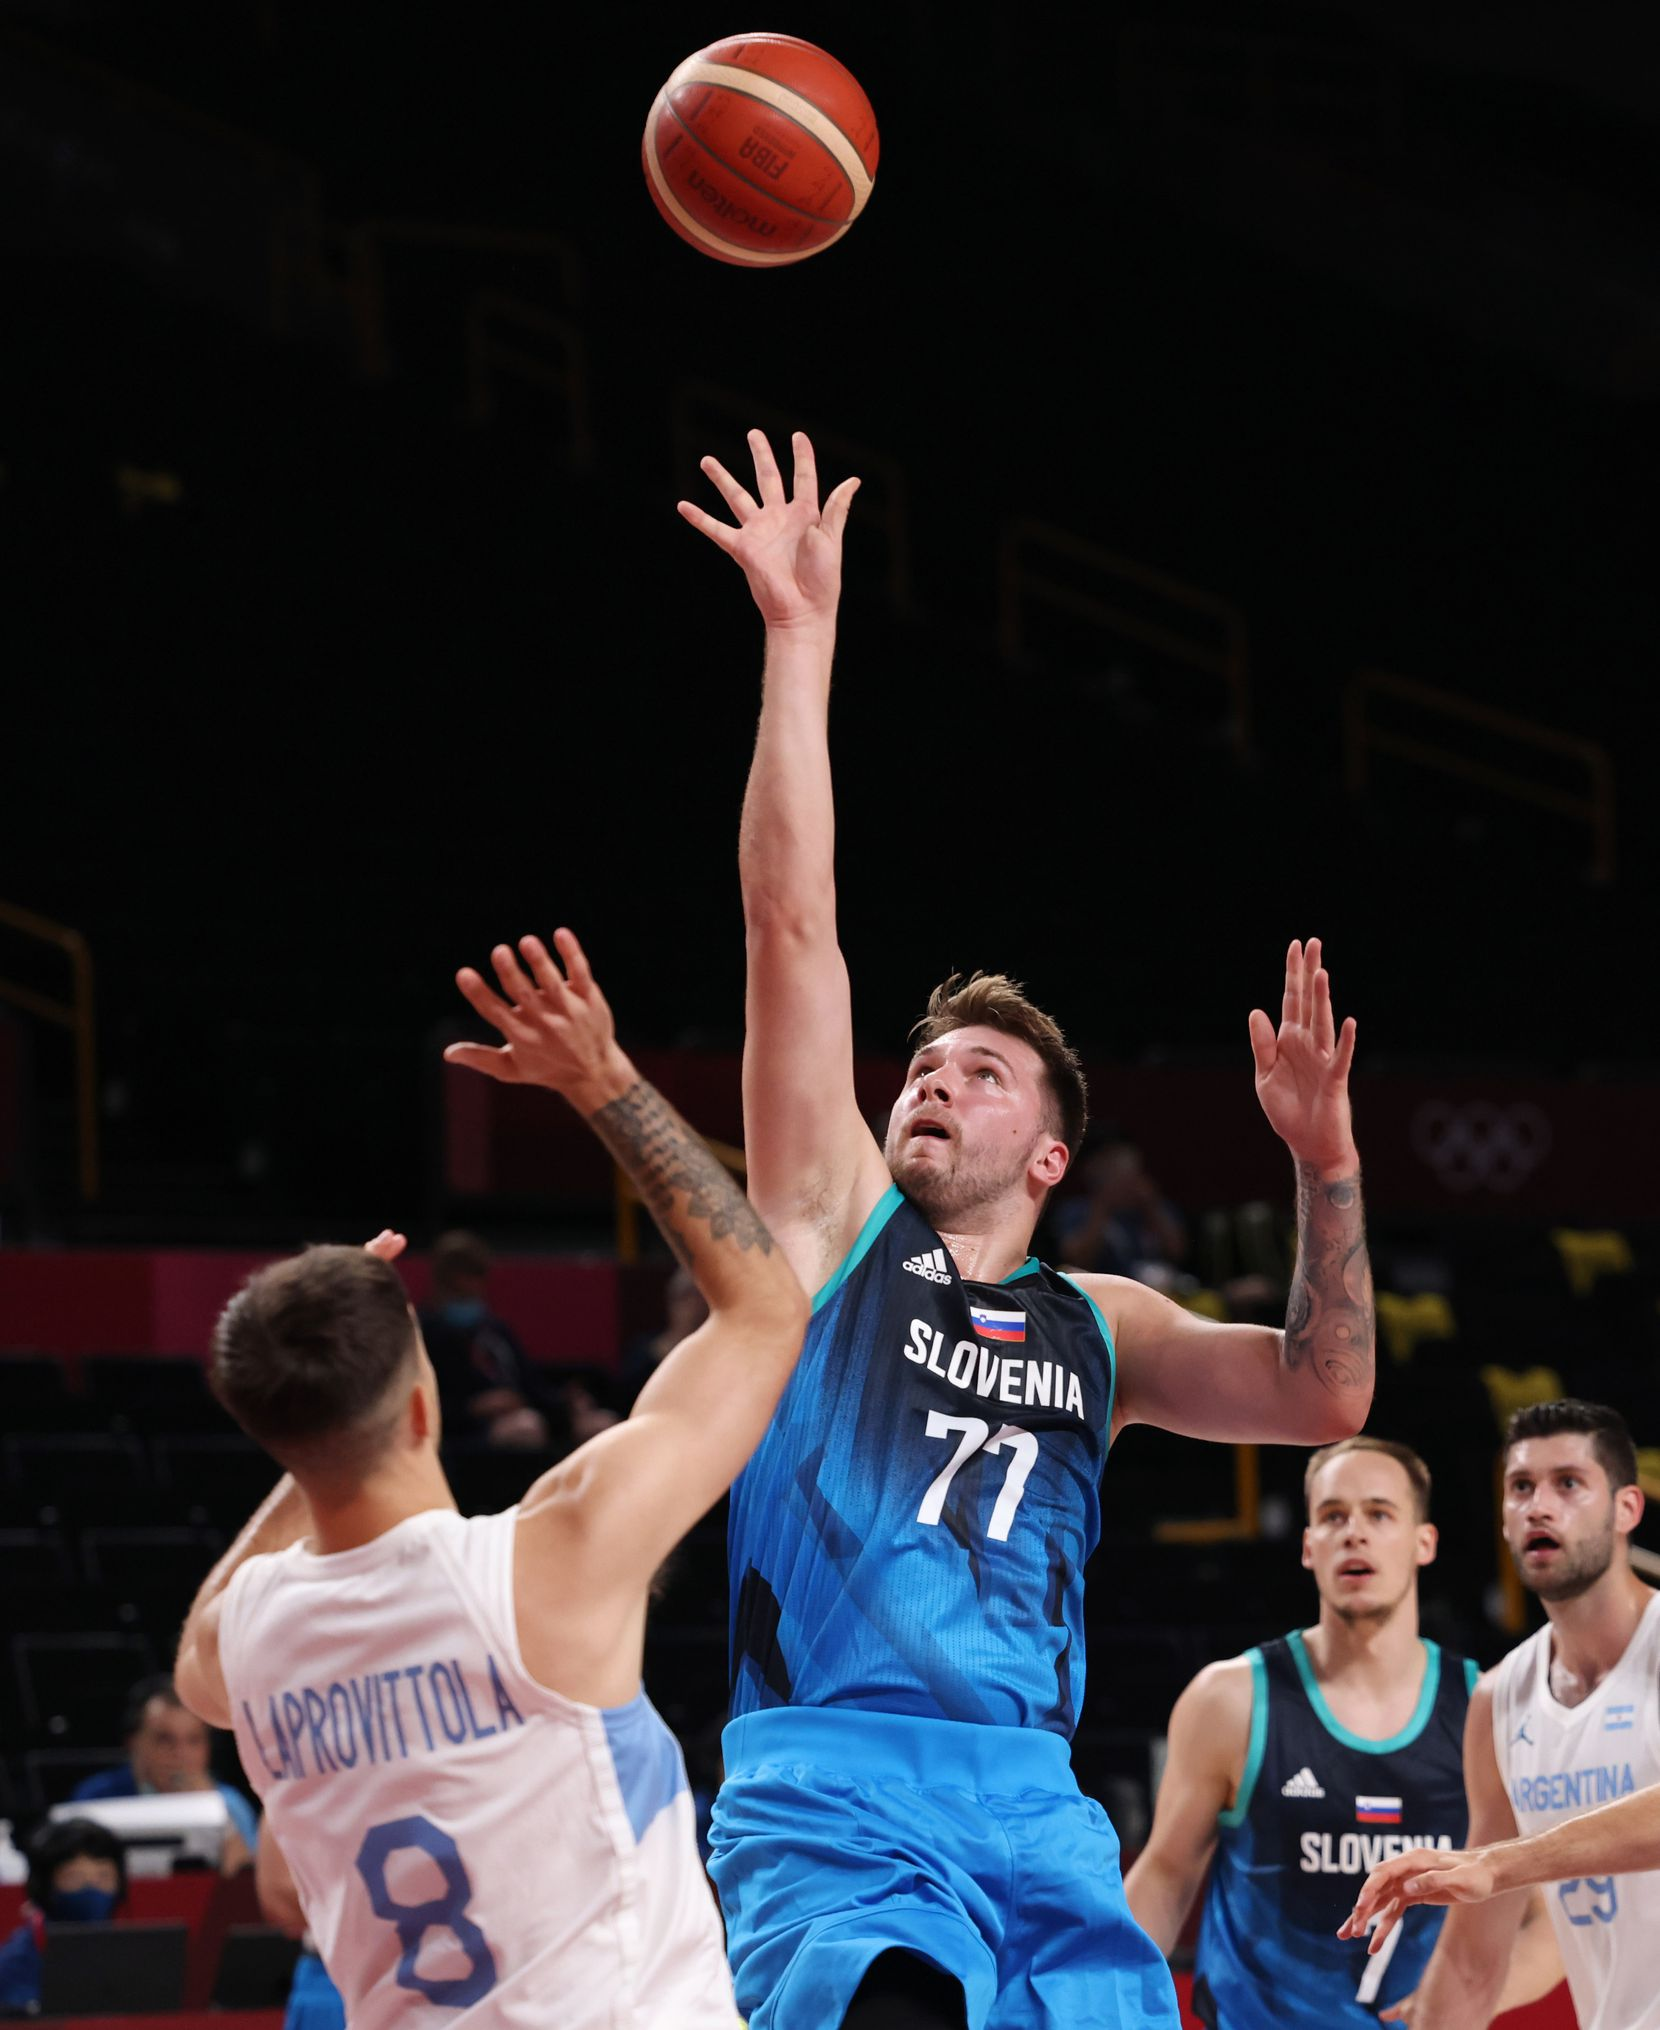 Slovenia's Luka Doncic (77) attempts a shot in front of Argentina's Nicolas Laprovittola (8) in the first half of play during the postponed 2020 Tokyo Olympics at Saitama Super Arena on Monday, July 26, 2021, in Saitama, Japan. Slovenia defeated Argentina 118-100. (Vernon Bryant/The Dallas Morning News)